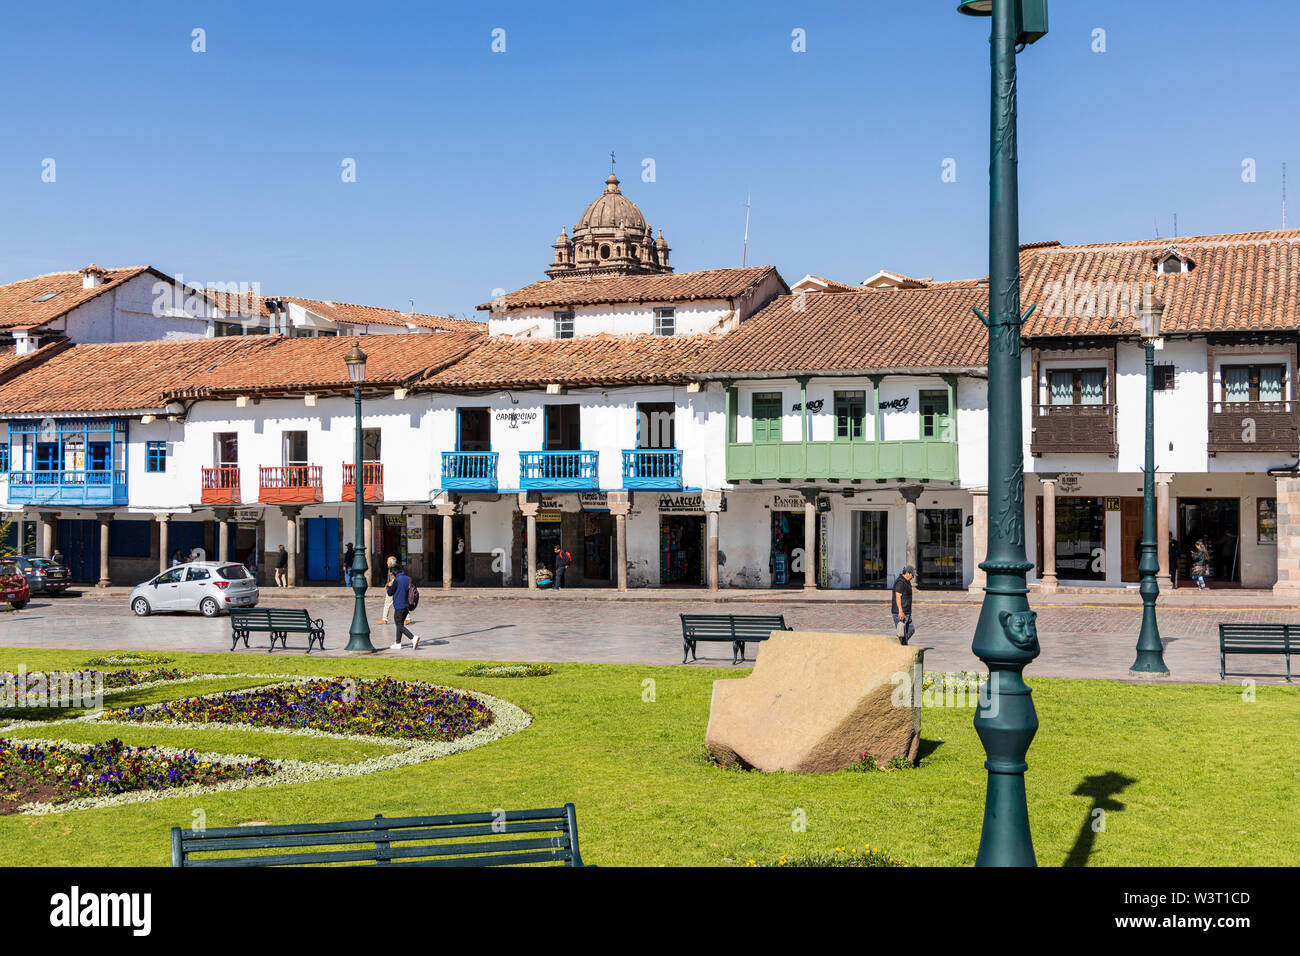 General view of the Plaza de Armas in Cusco, Peru, South America - Stock Image